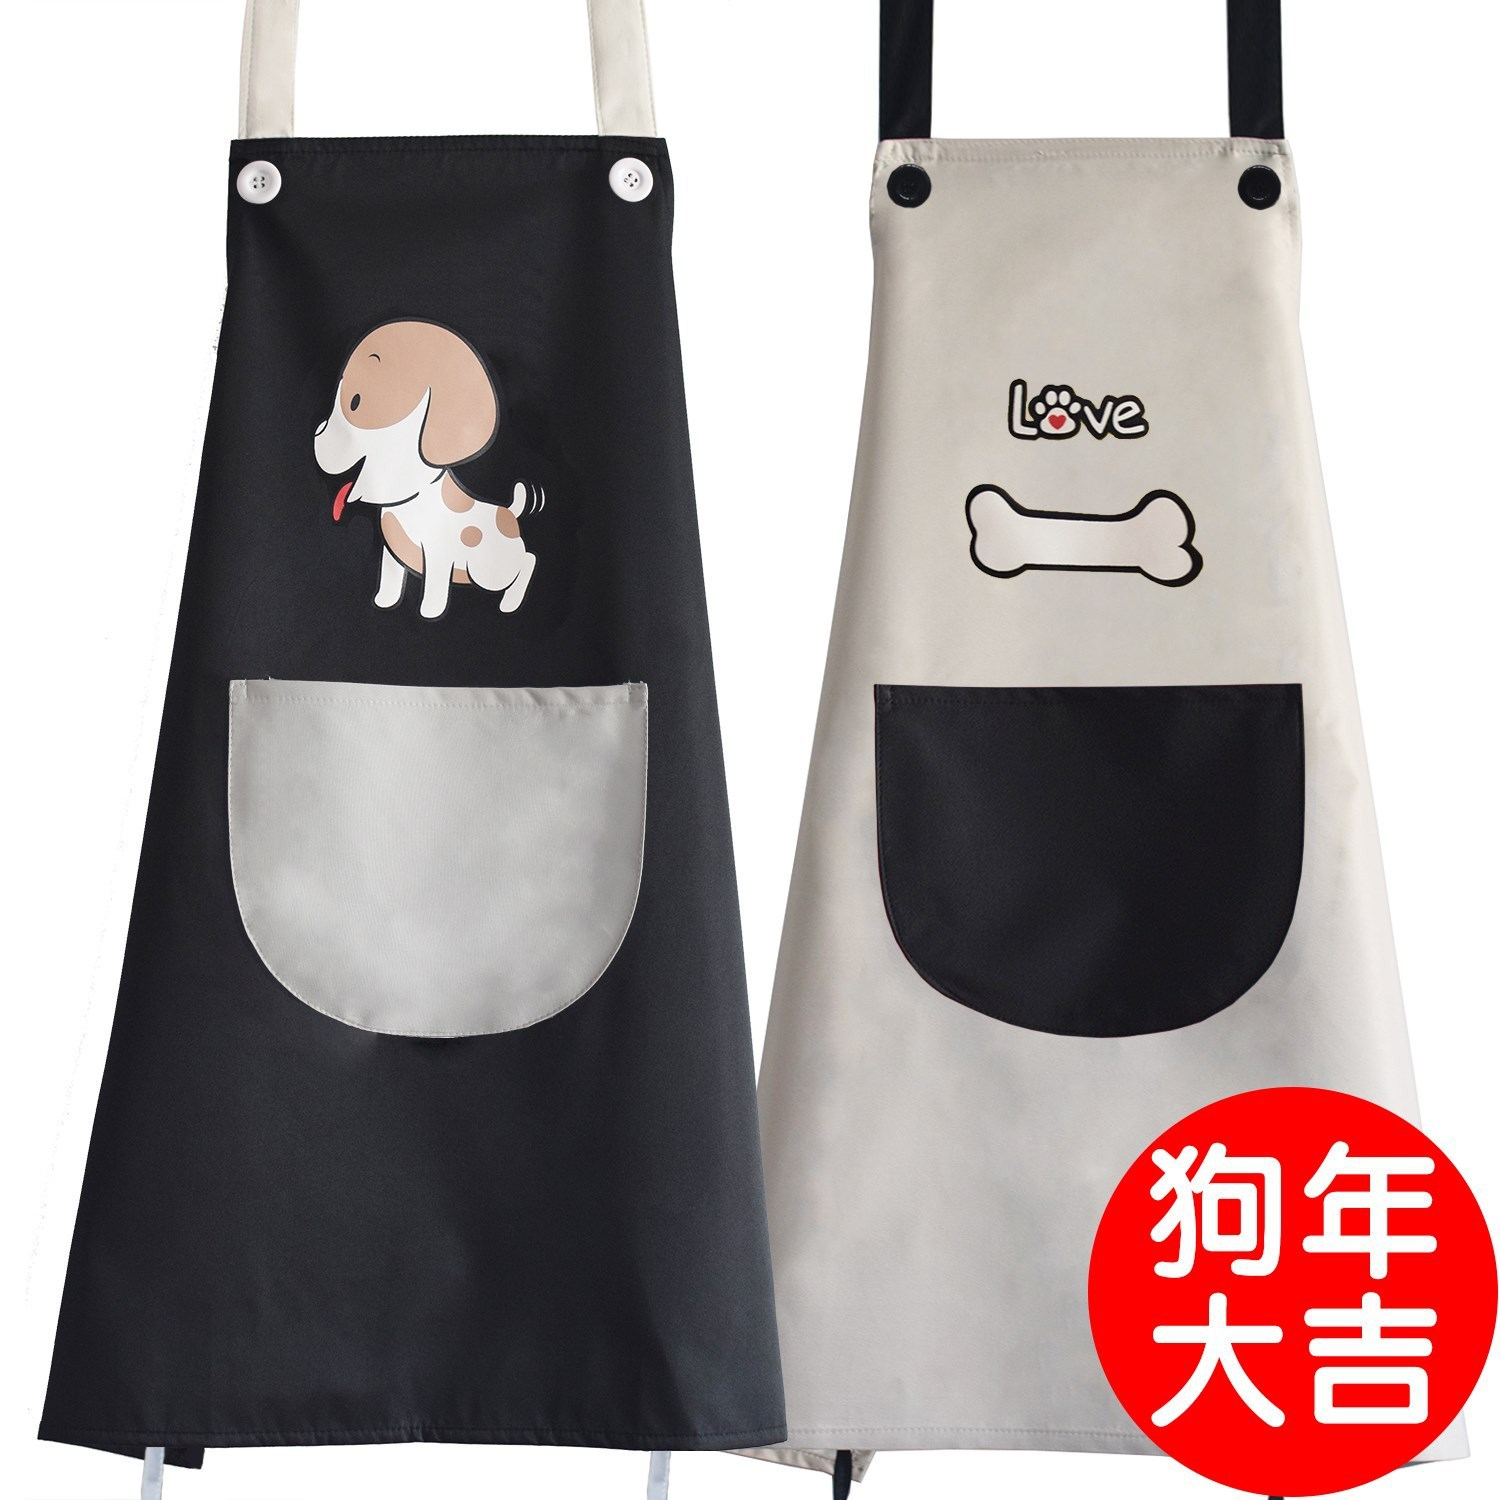 Pet Shop Bath Division Work Clothes Bath Robe Industry Waterproof Apron Cat Dog Beauty Toiletries Tool